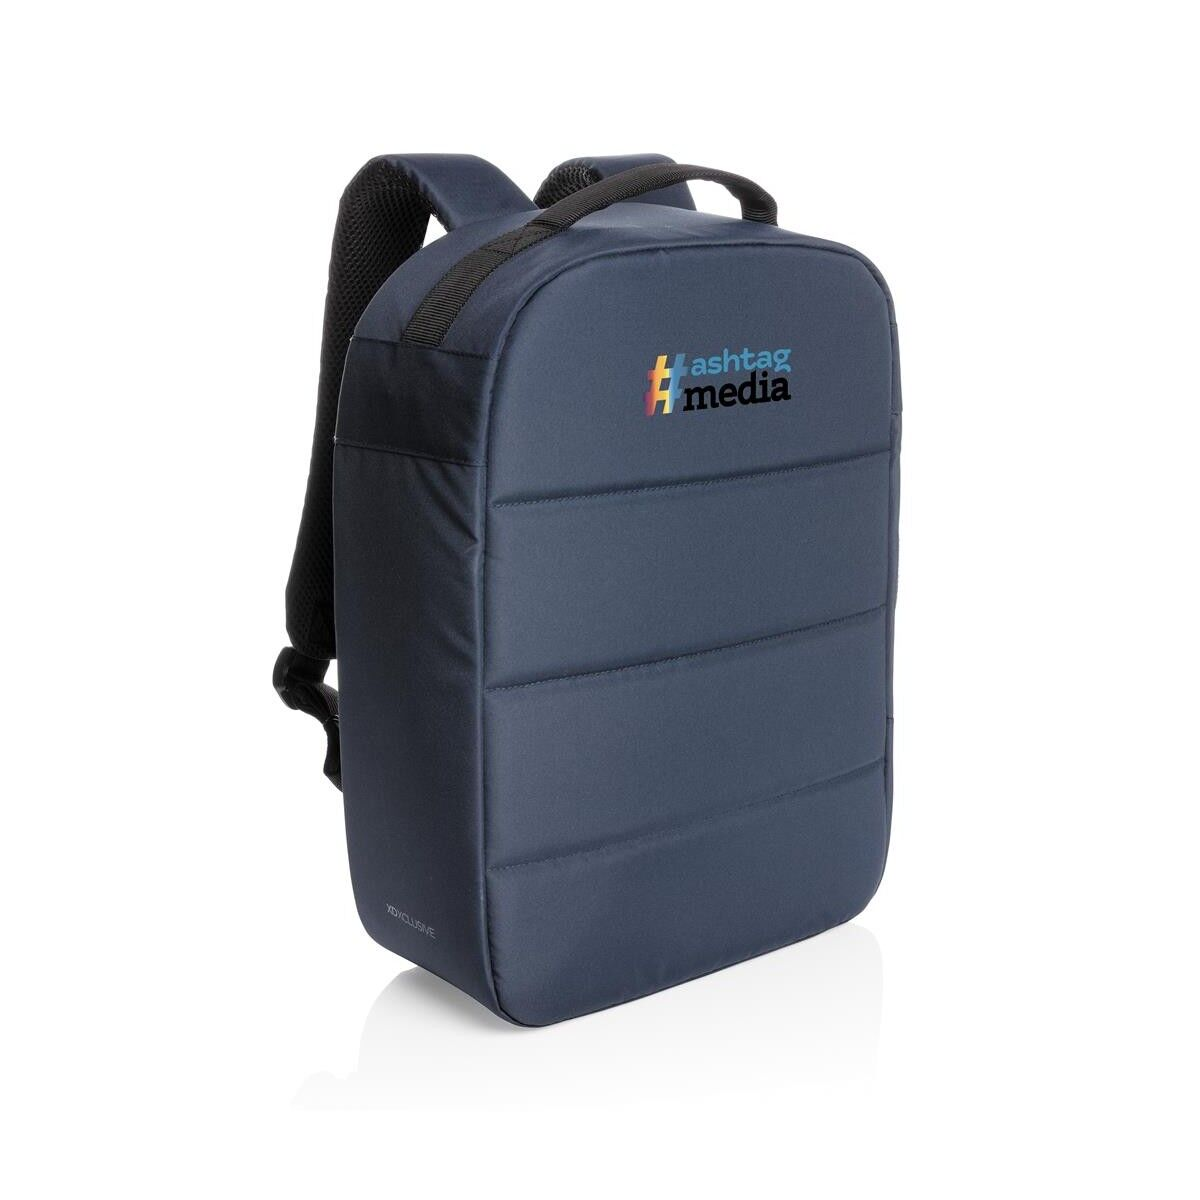 RPET Recycled Anti-Theft Laptop Backpack